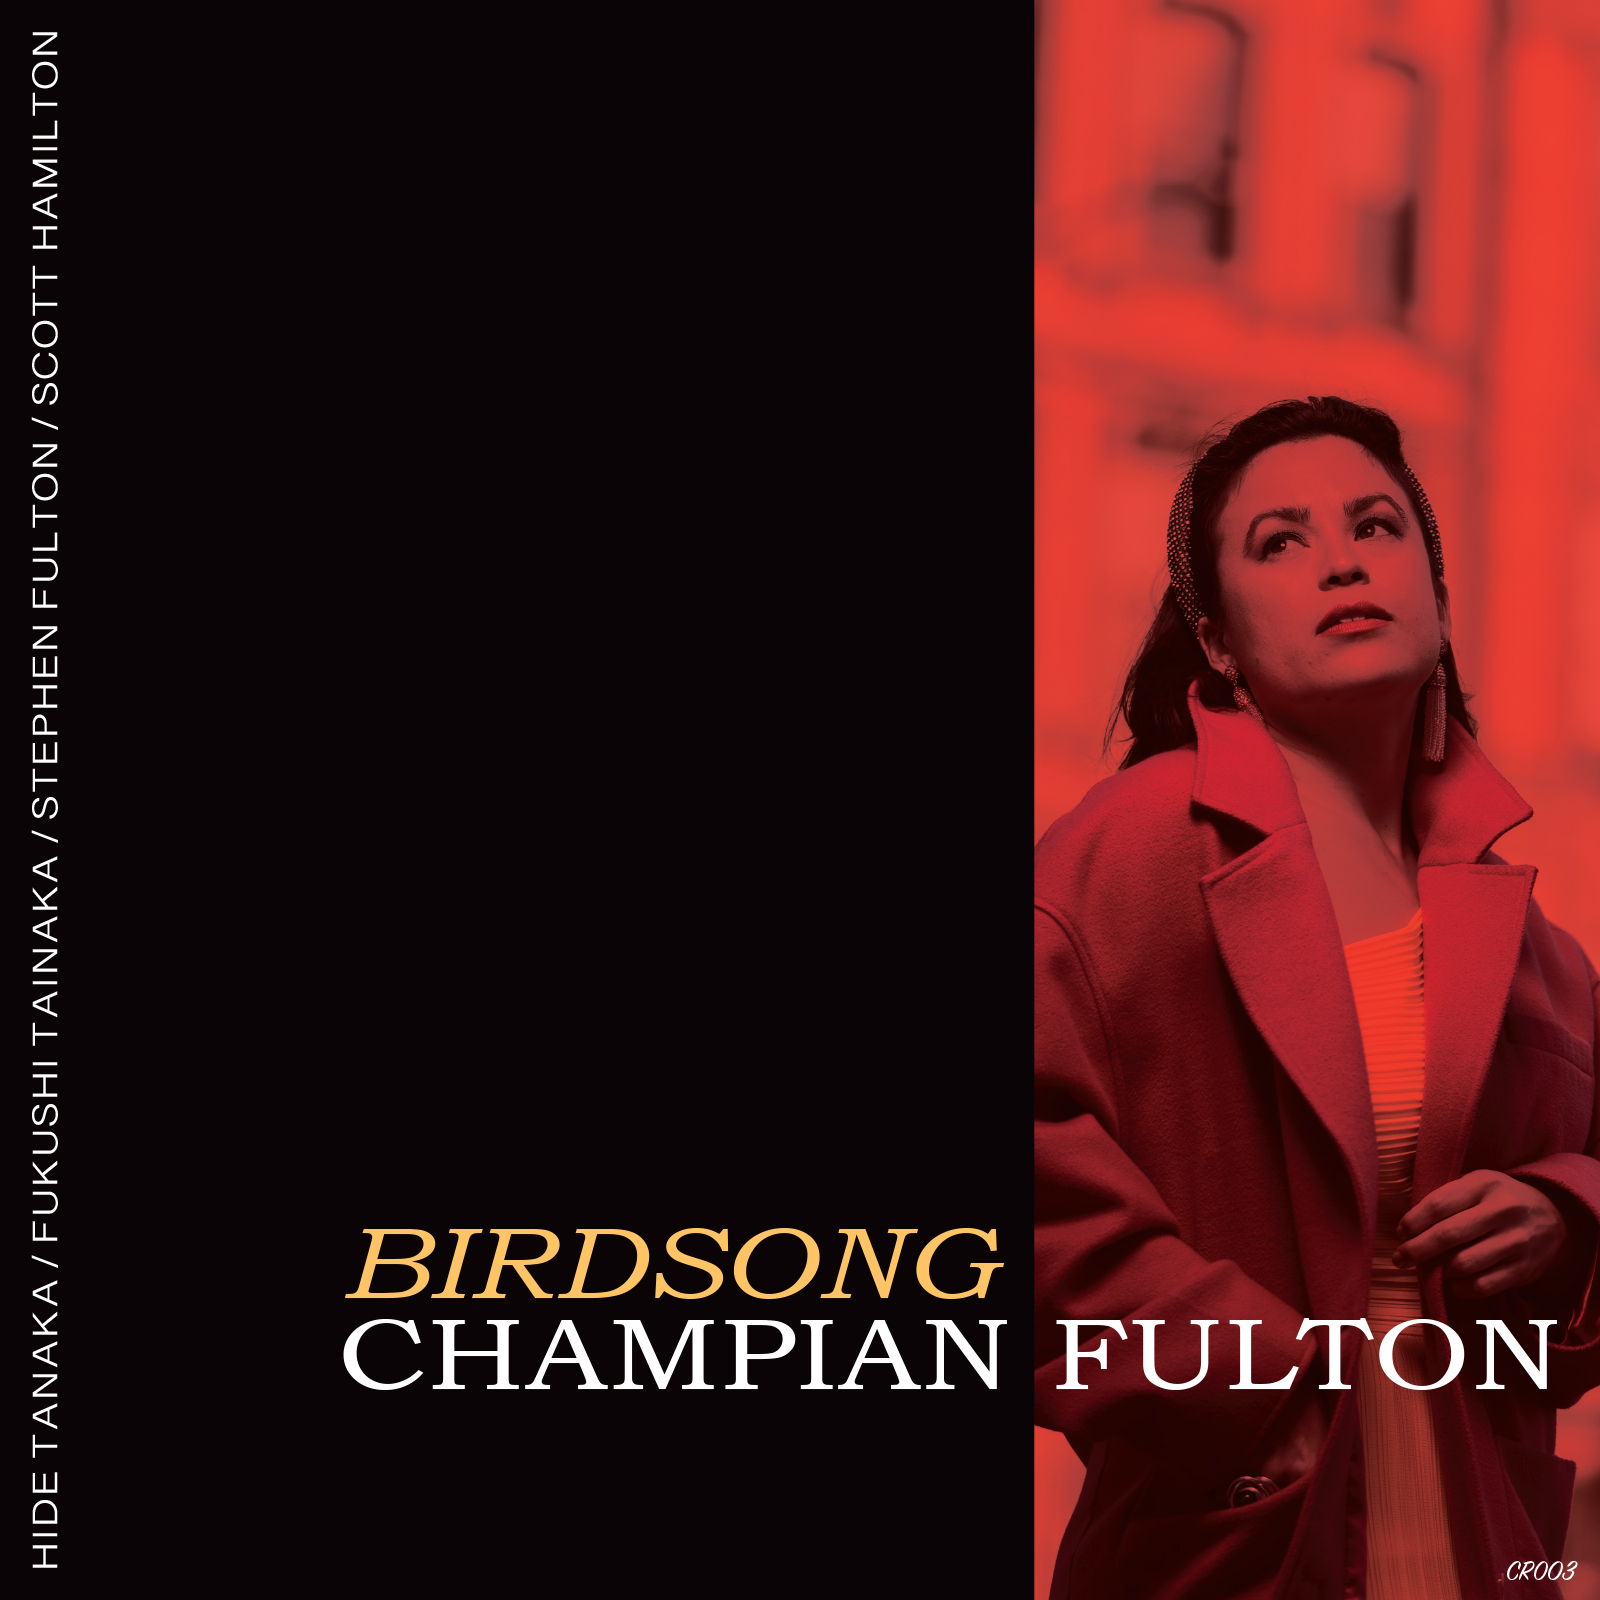 "NEW RELEASE: Champian Fulton Celebrates Charlie Parker's Centennial with ""Birdsong"" Feat. Scott Hamilton (August 28th, 2020)"